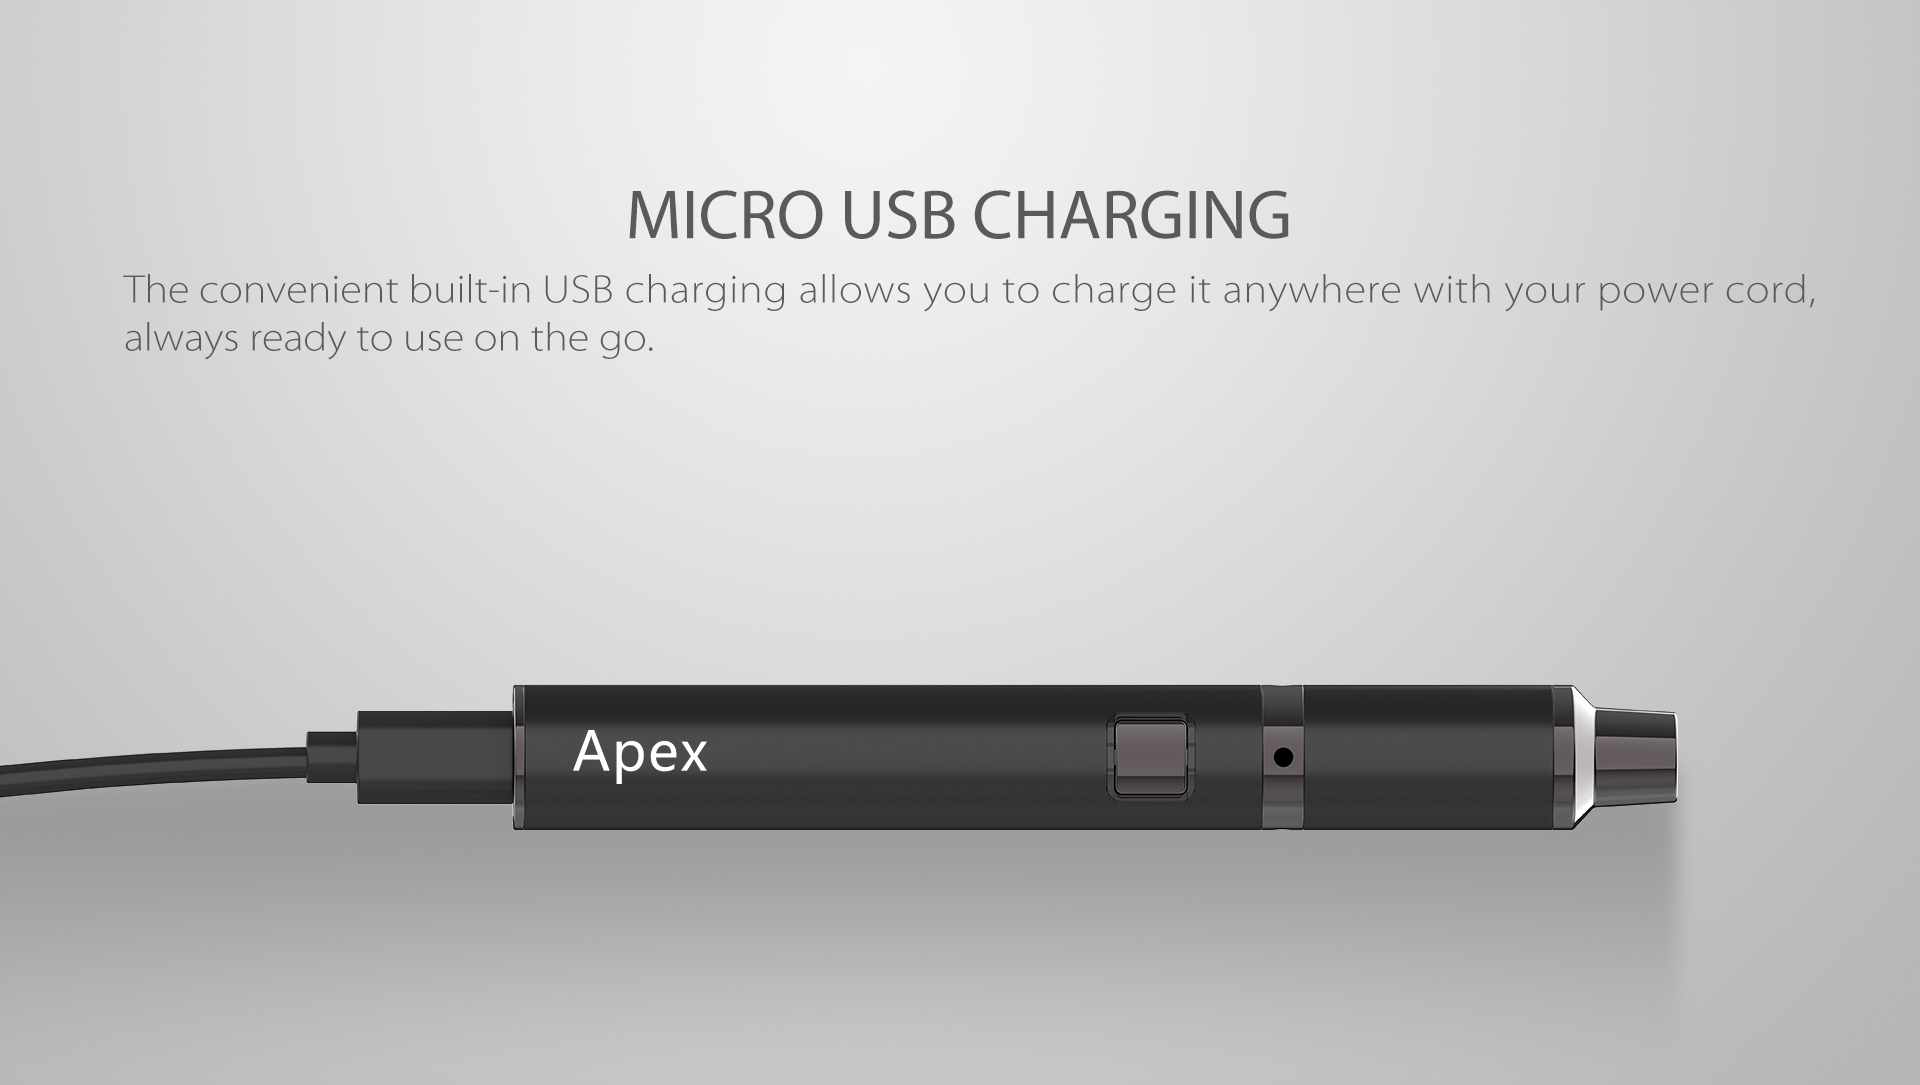 Yocan Apex concentrate vaporizer pen charge via micro USB port.